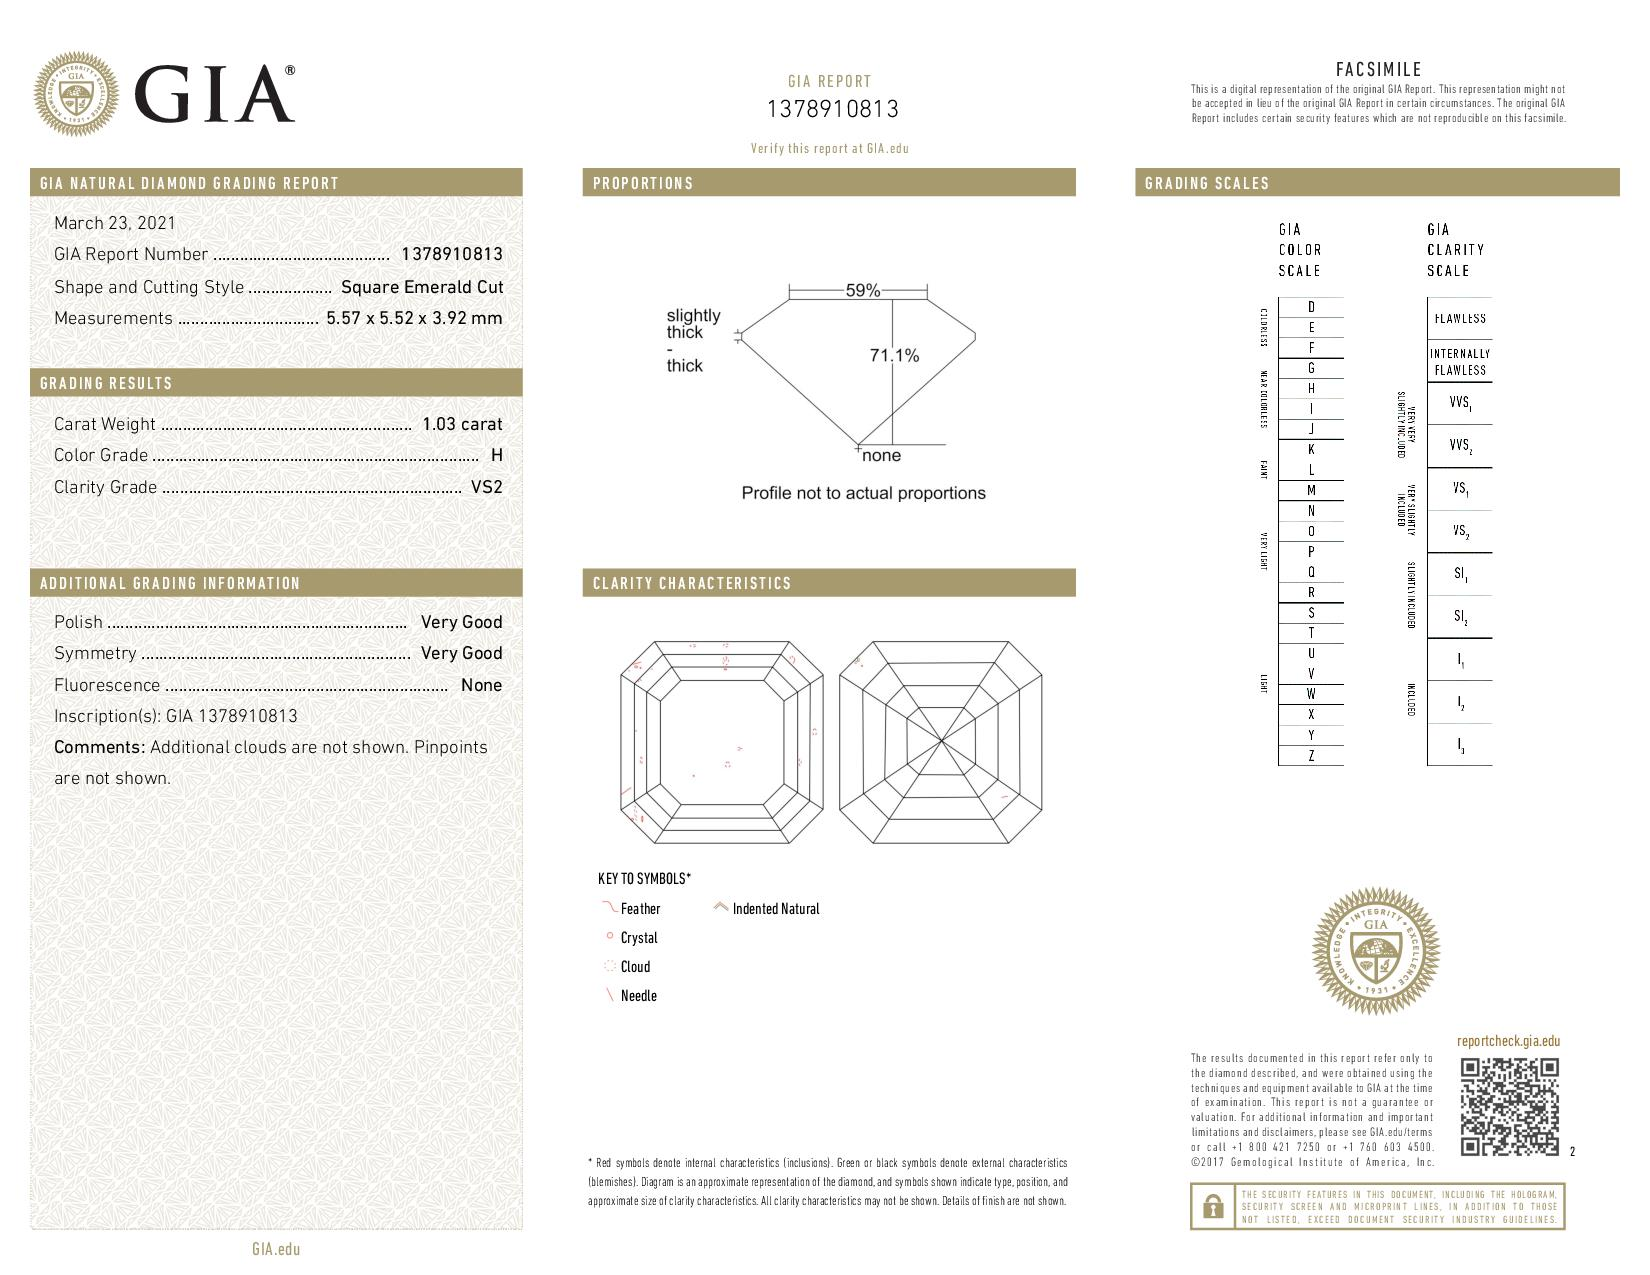 This is a 1.03 carat asscher shape, H color, VS2 clarity natural diamond accompanied by a GIA grading report.